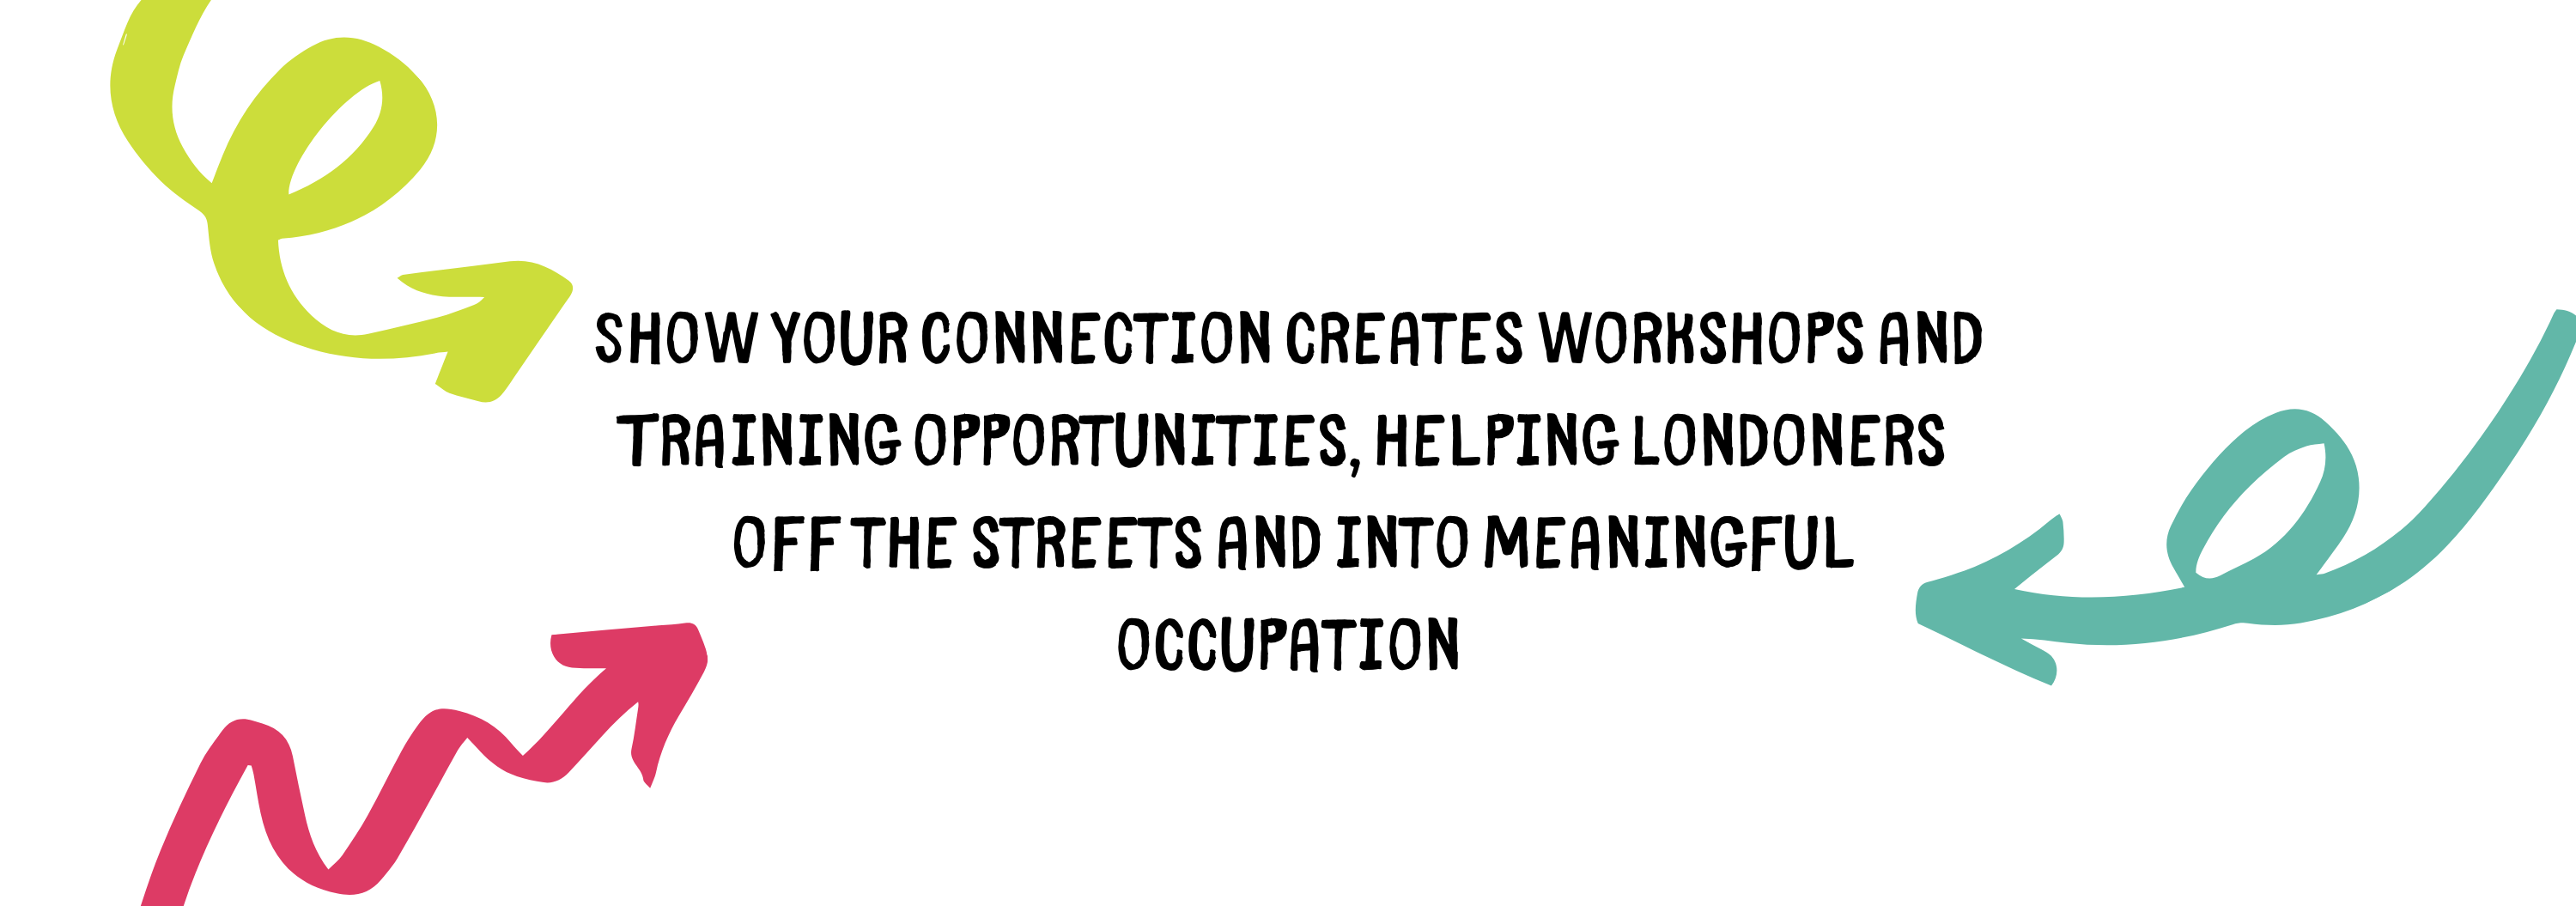 Show your connection creates workshops and training opportunities, helping Londoners off the streets and it meaningful occupation